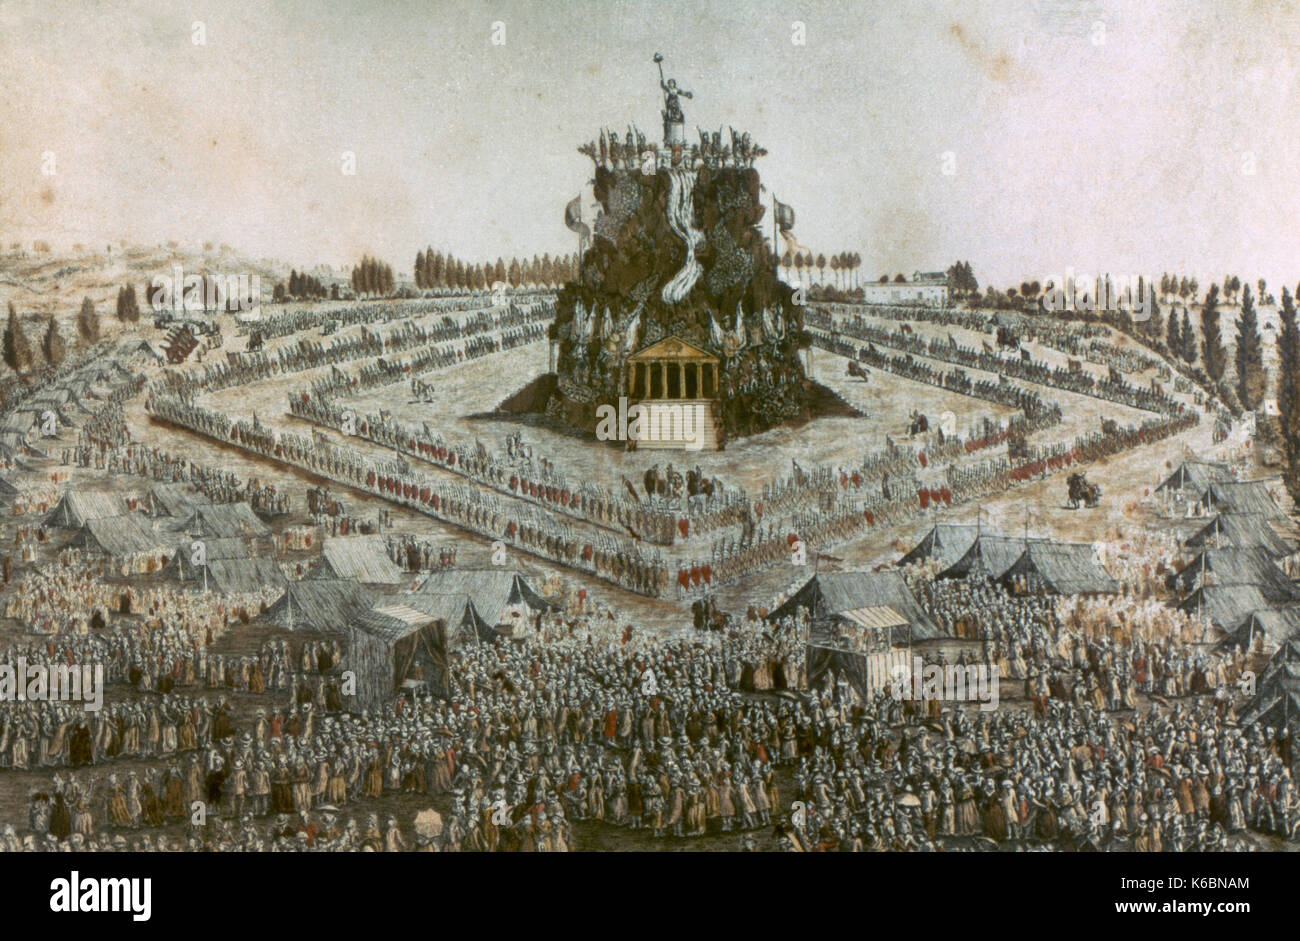 French Revolution (1789-1799). The Feast in the Federal Field in Lyon, May 30, 1790. Etching, 18th century. - Stock Image